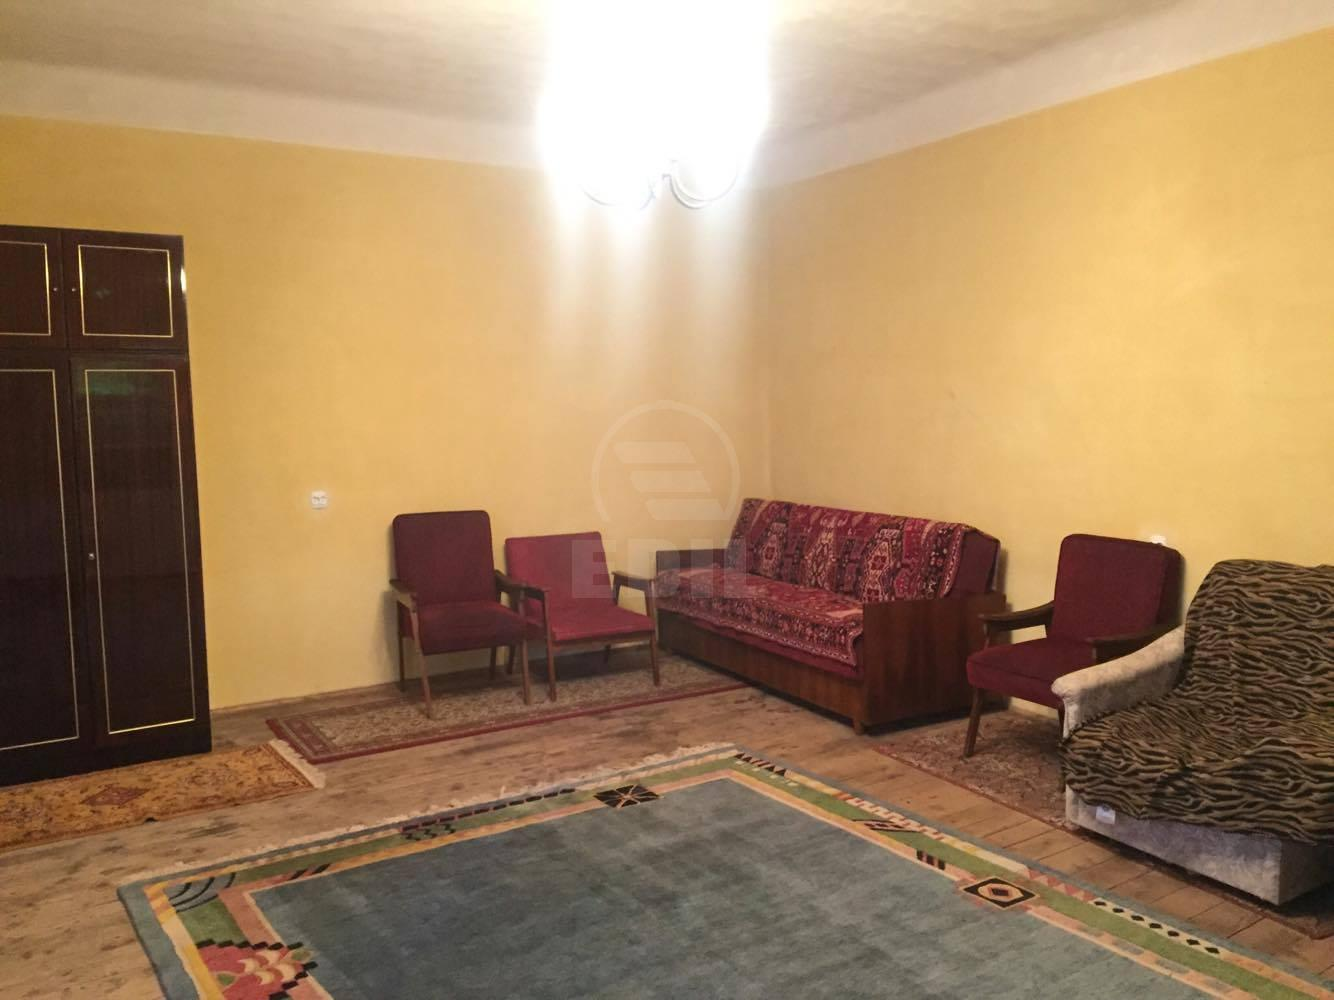 Apartment for rent 3 rooms, APCJ281600-14